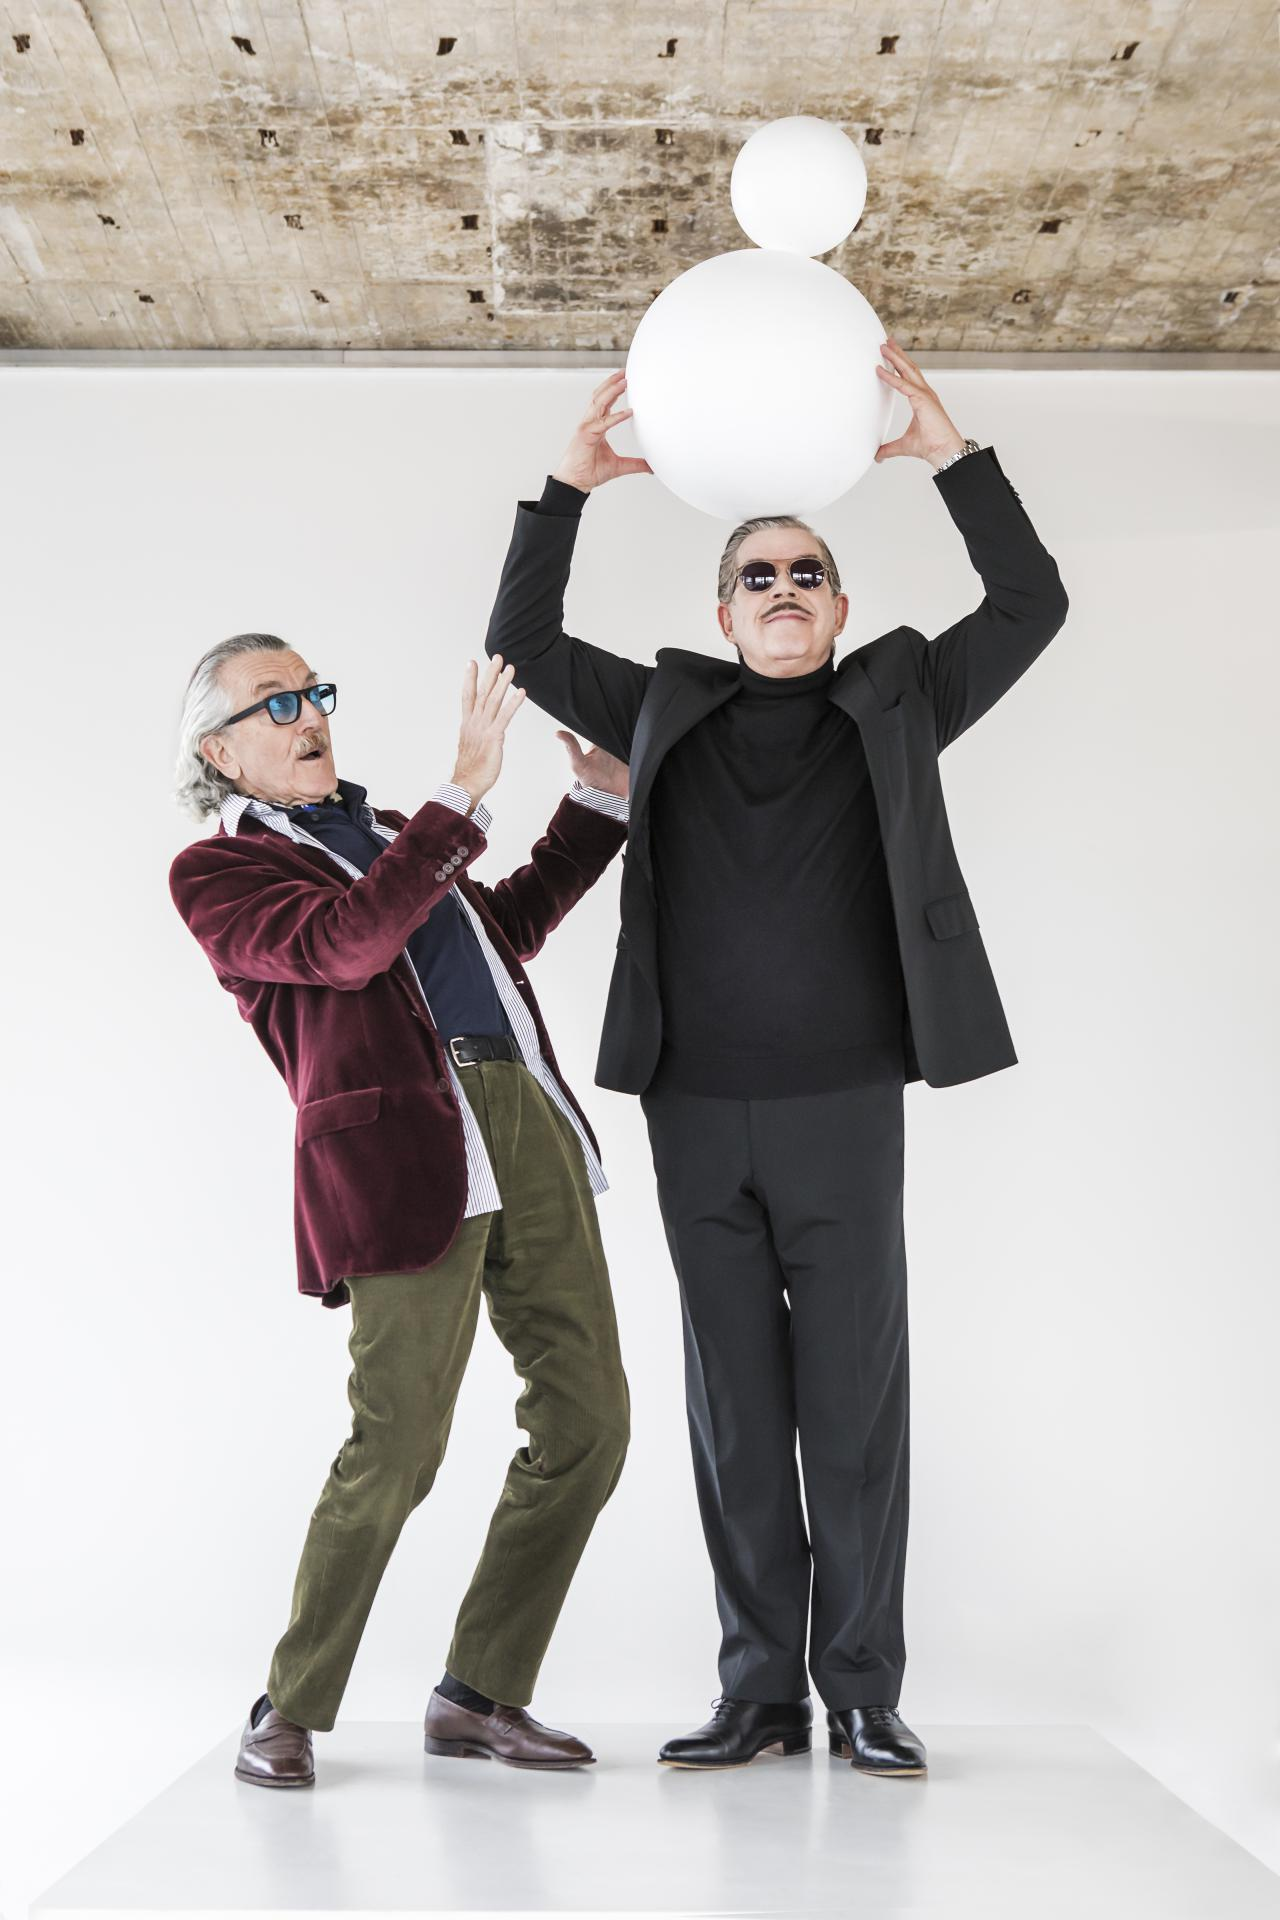 The musician duo Yello stands side by side in front of a wall. The one on the right wears a suit and holds a sculpture of two round balls above his head. The left one stands next to him in an intercepting position.